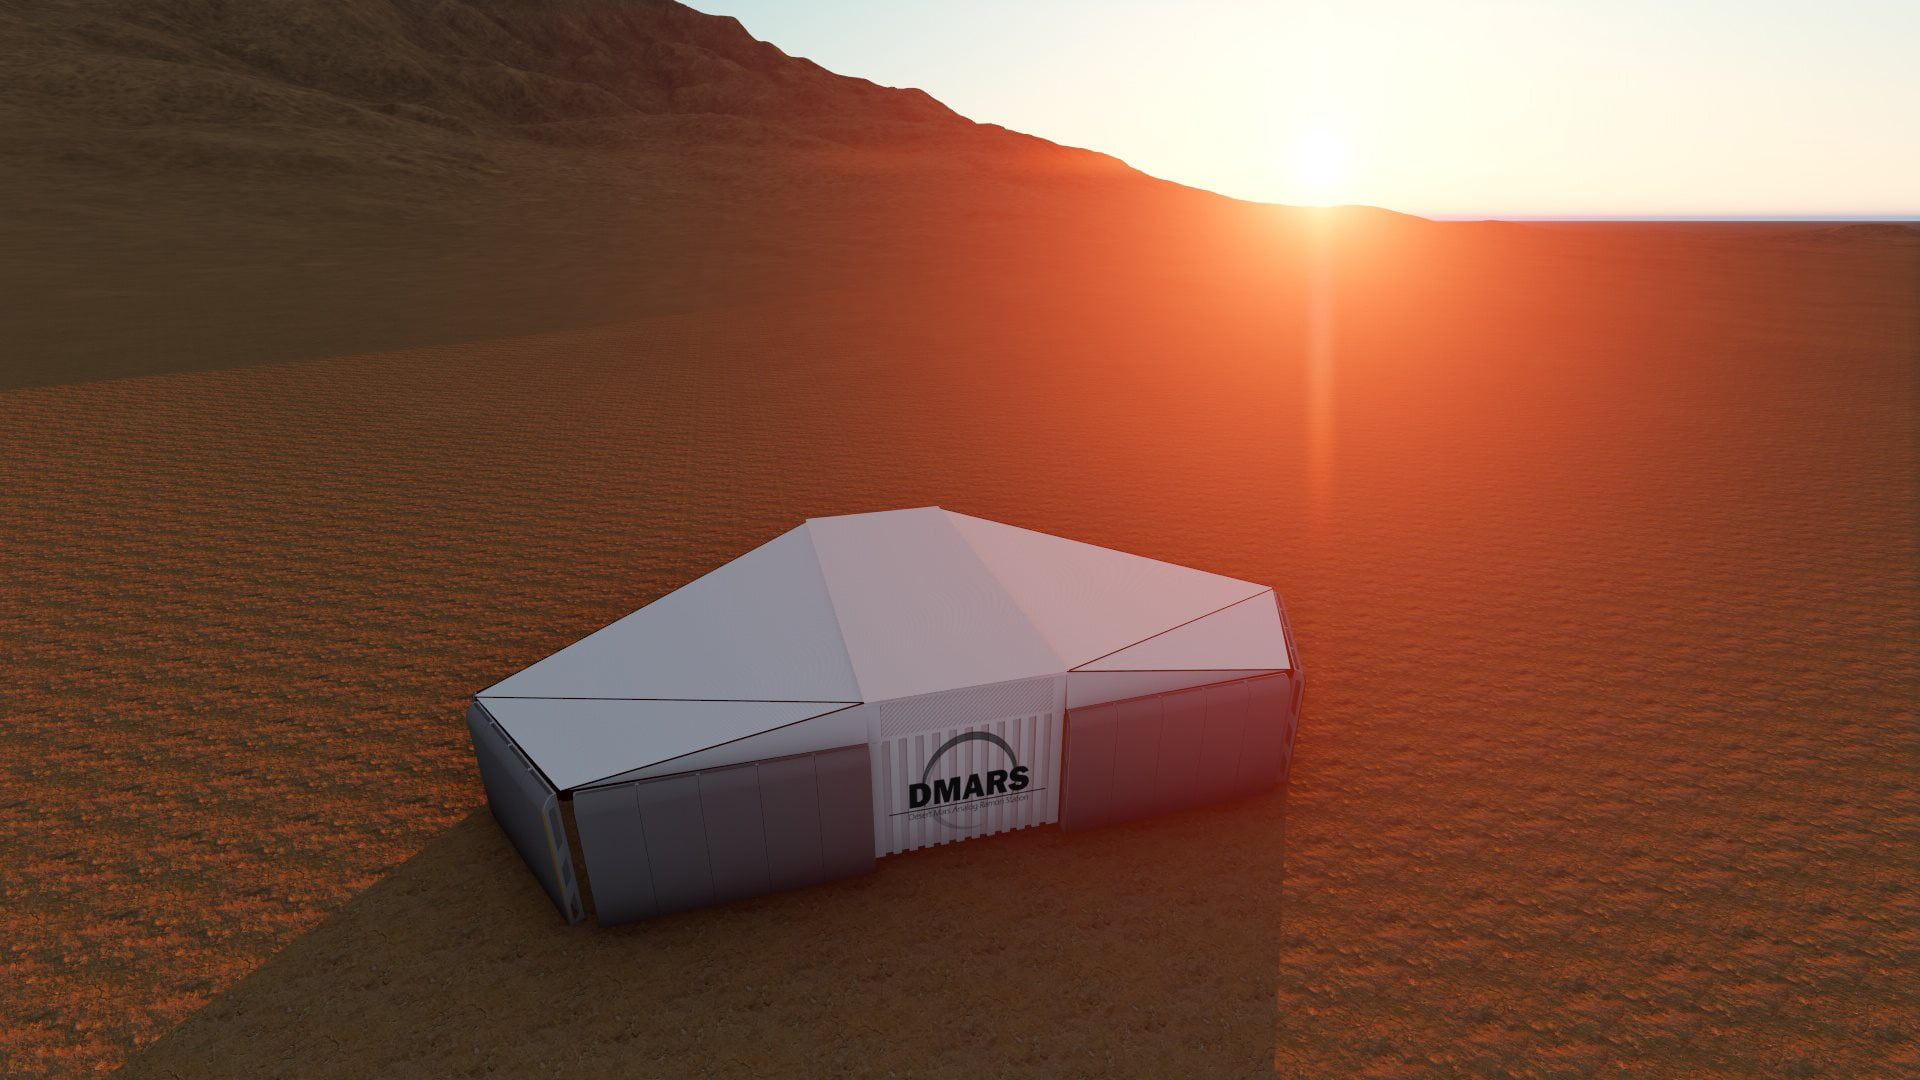 The Desert Mars Analog Ramon Station will be located near Mitzpe Ramon. Courtesy: DMars